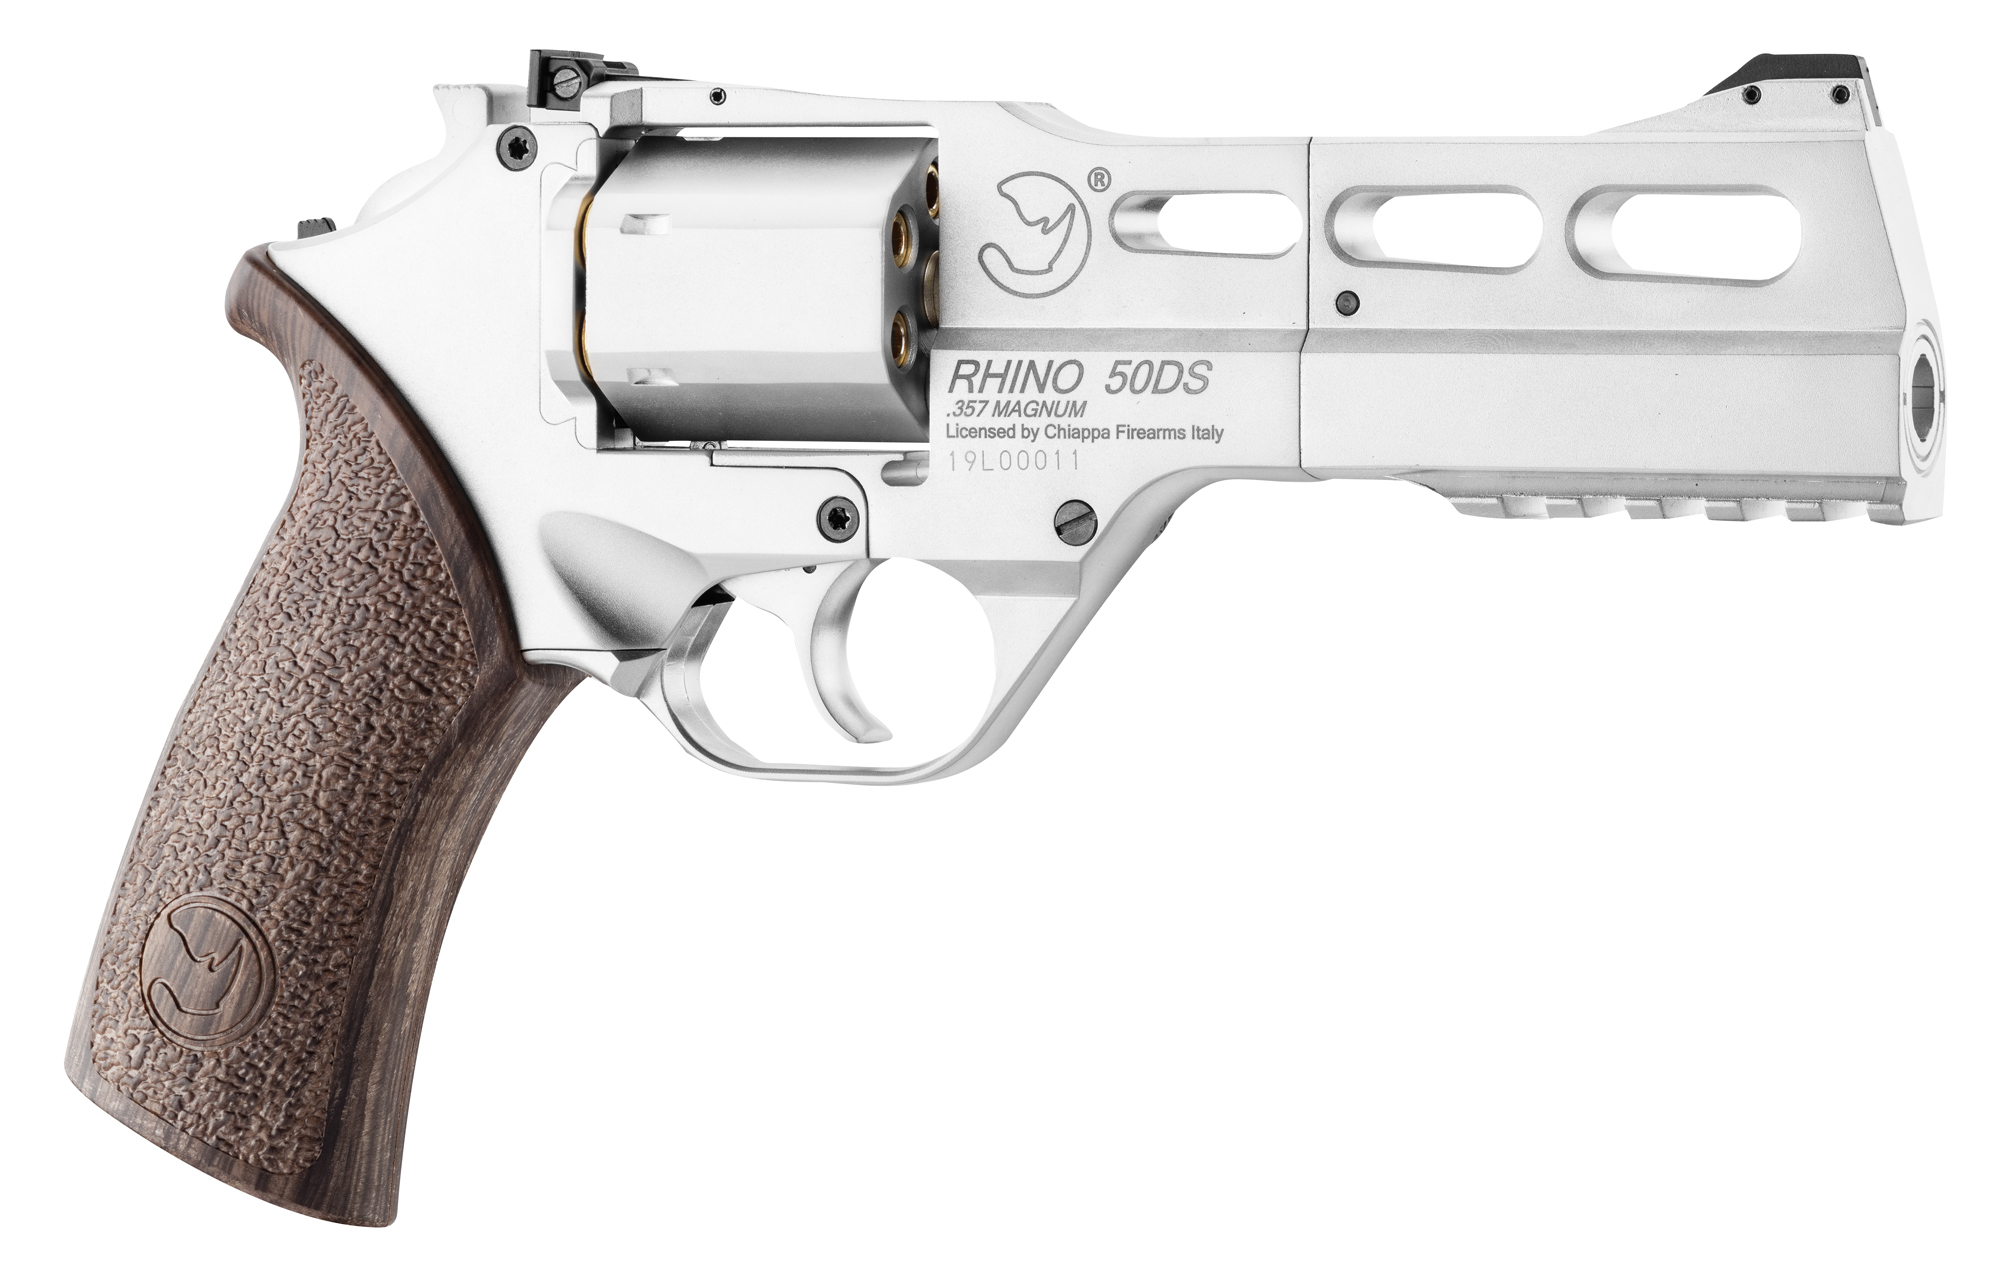 PG1051 Revolver Rhino 50 DS 4.5mm Cal. 177 CO2 3,5J Nickel - ACP002